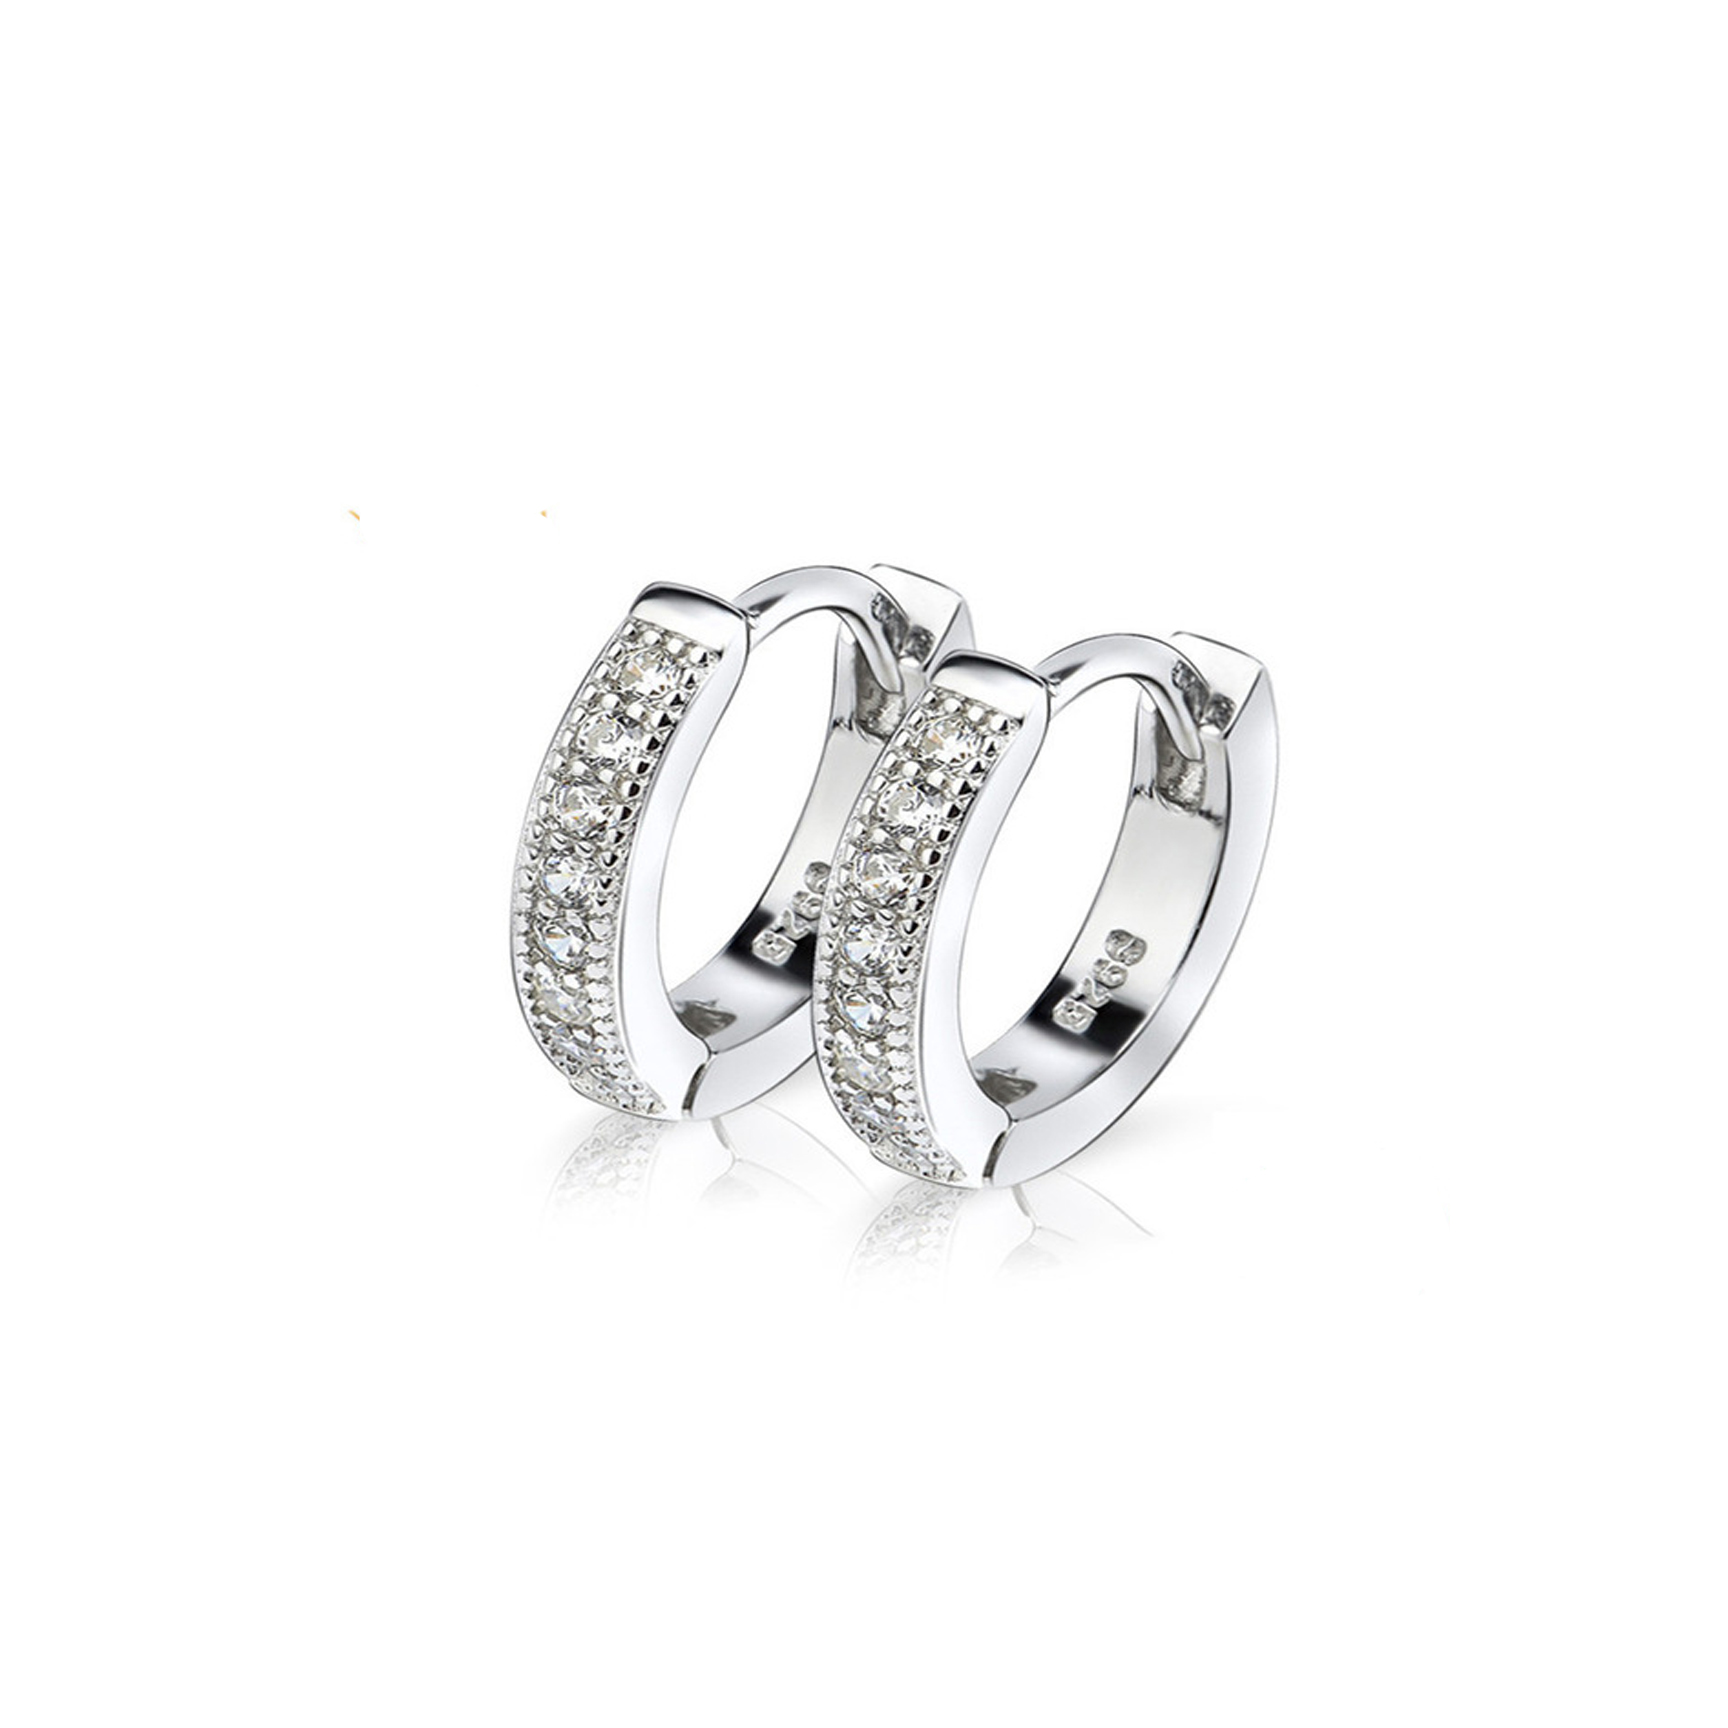 Small Hoop Silver Earrings 925 Sterling Silver Wide Huggie